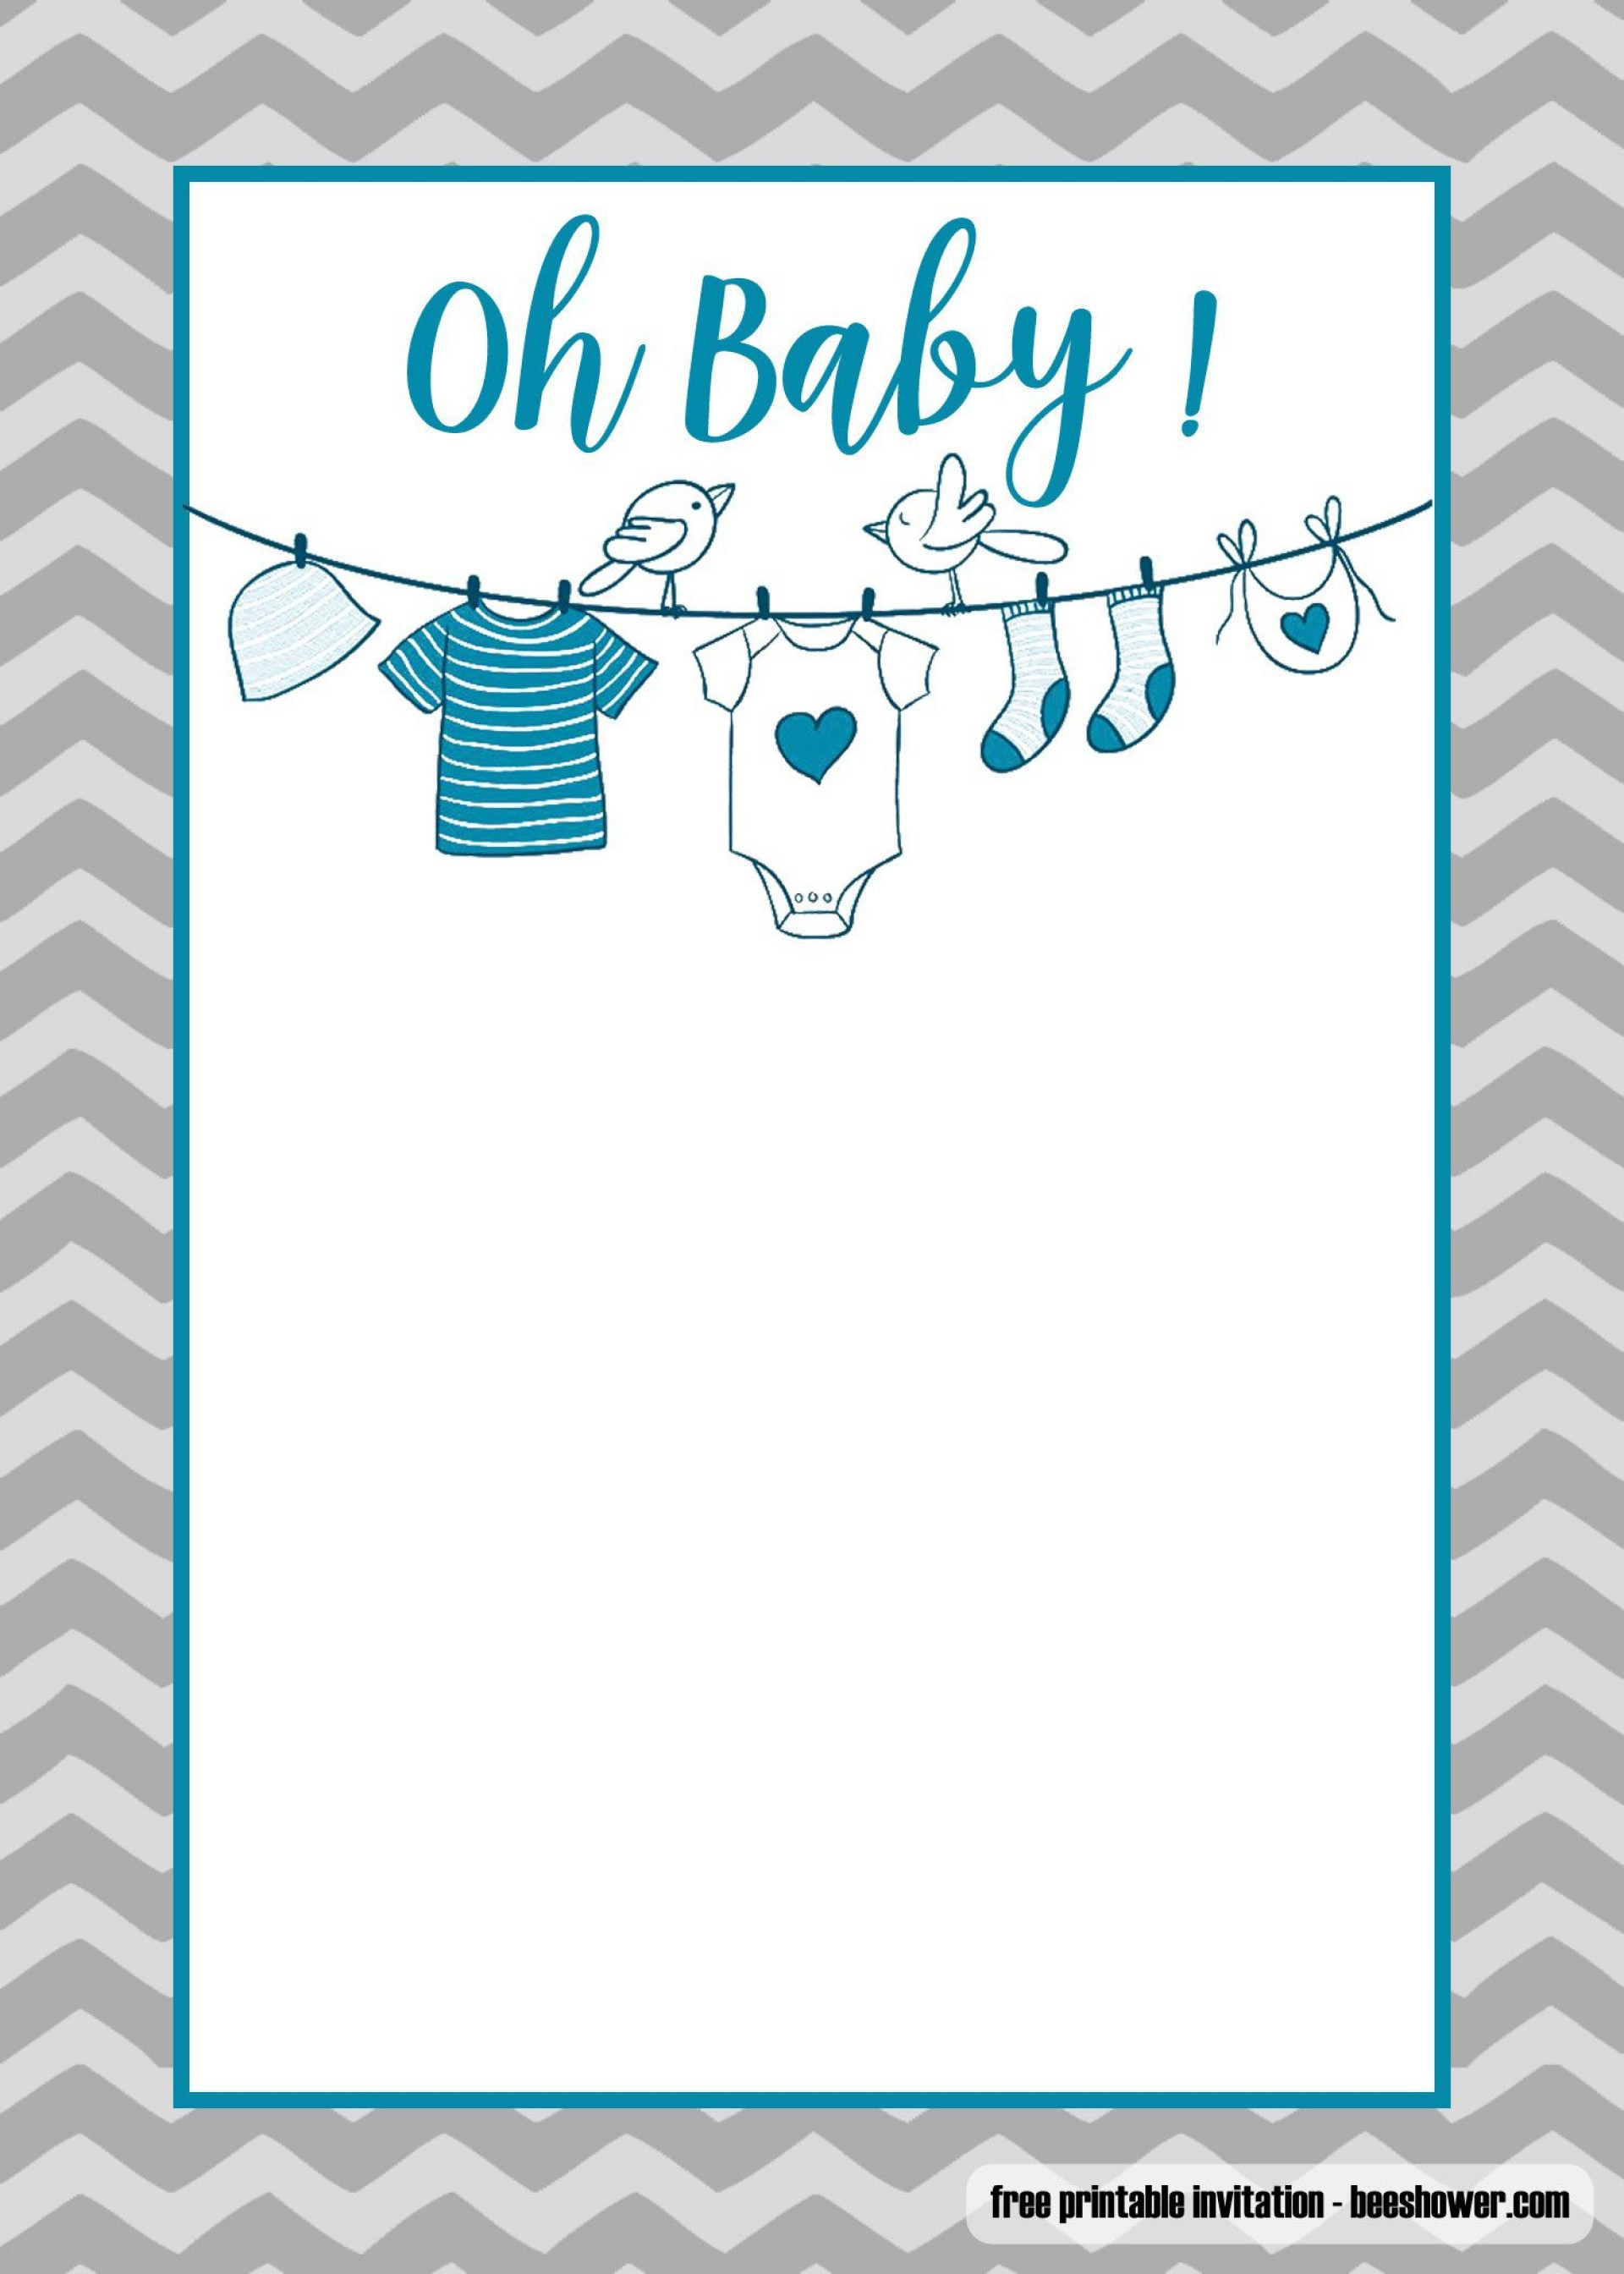 008 Striking Baby Shower Invite Template Word Photo  Work Invitation Wording Sample Format In M Free Microsoft1920